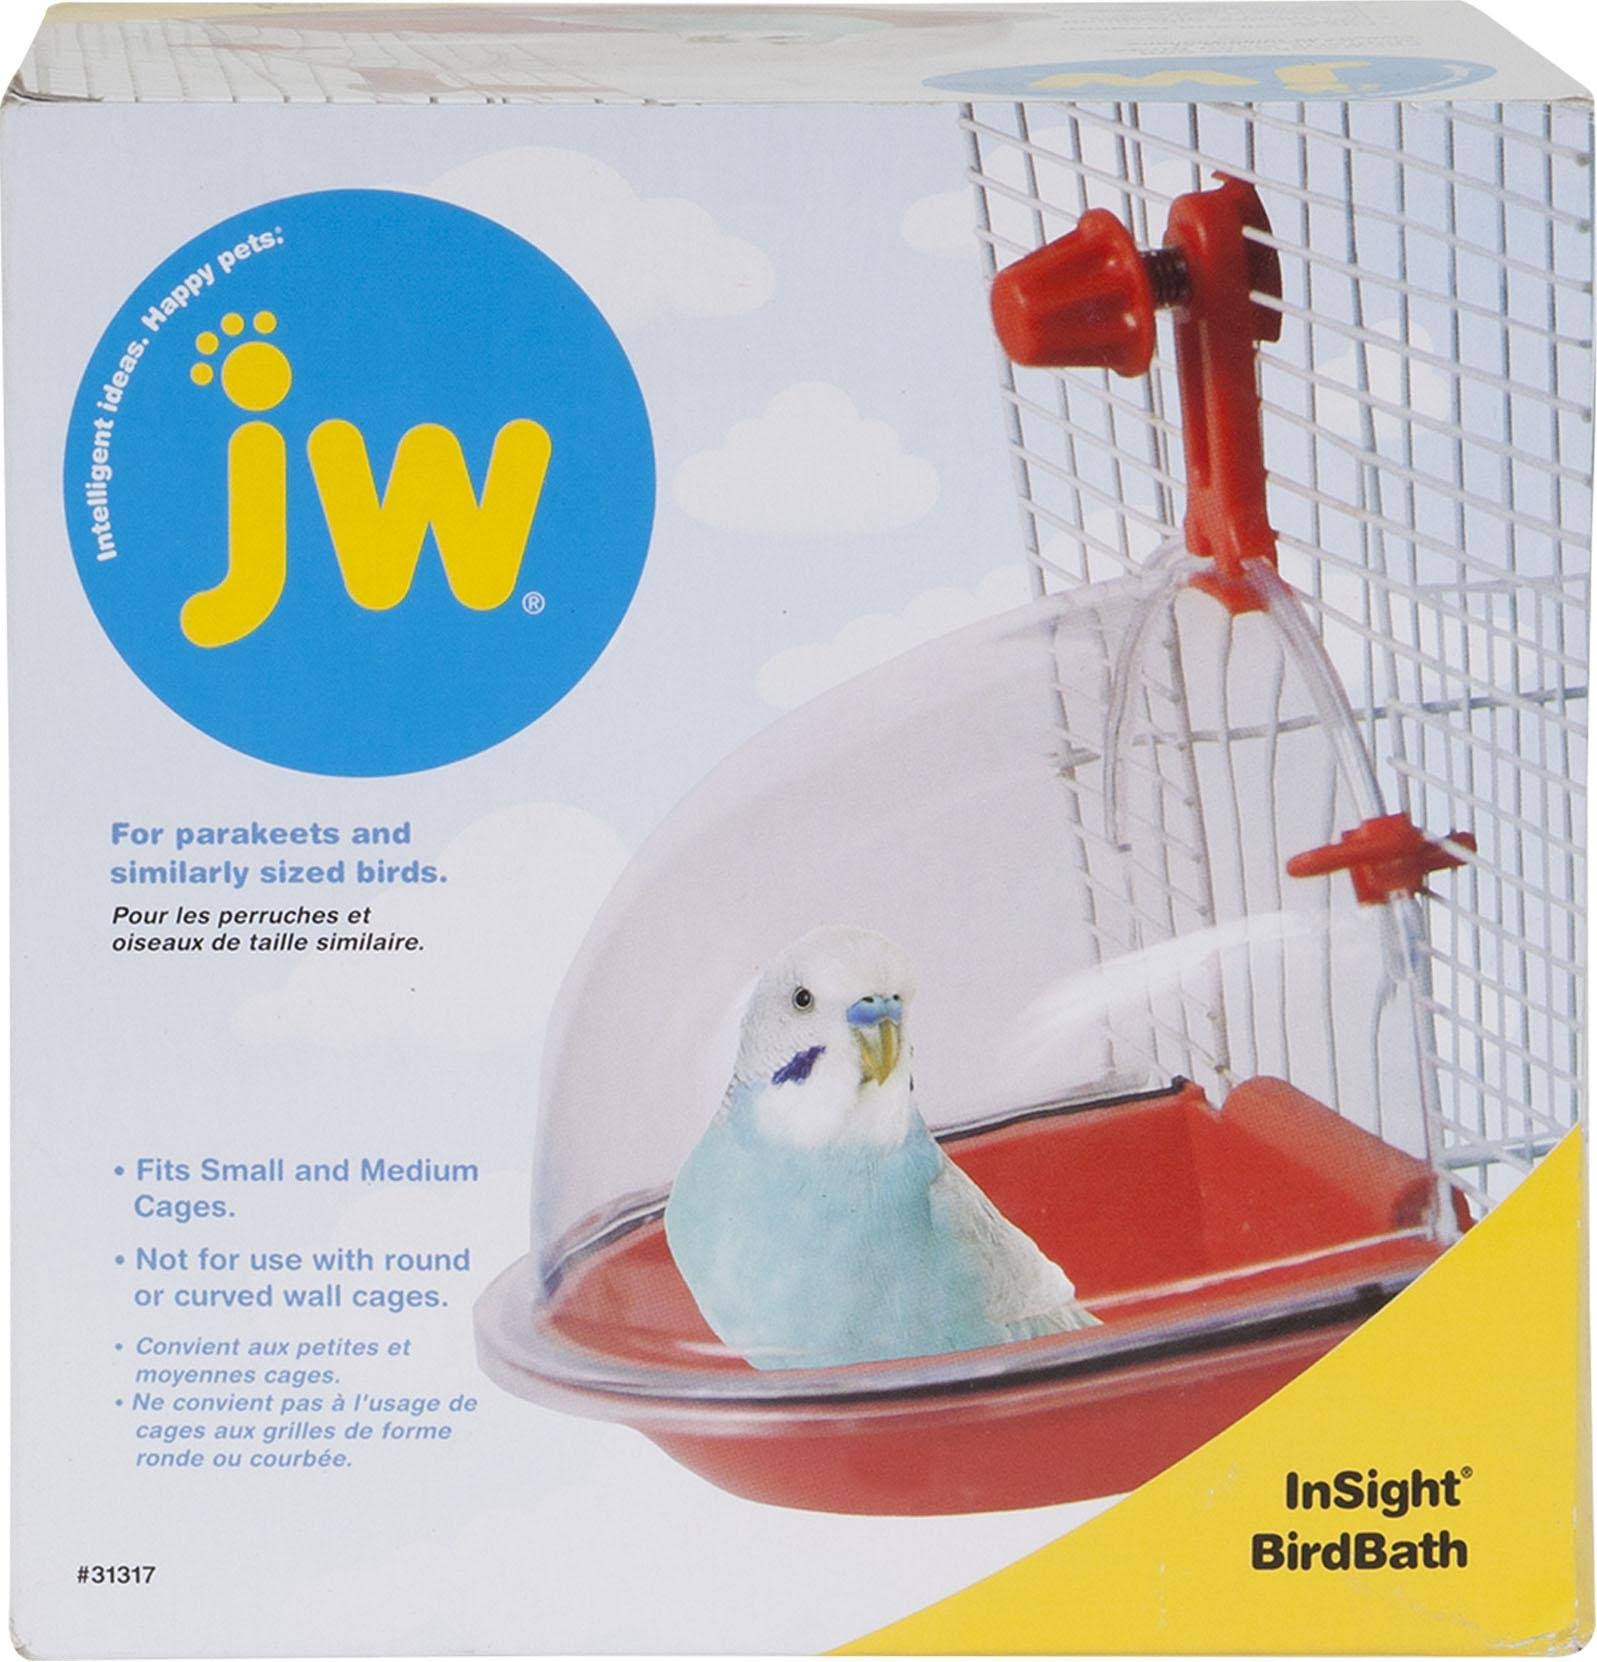 nsight Bird Bath Bird Accessory